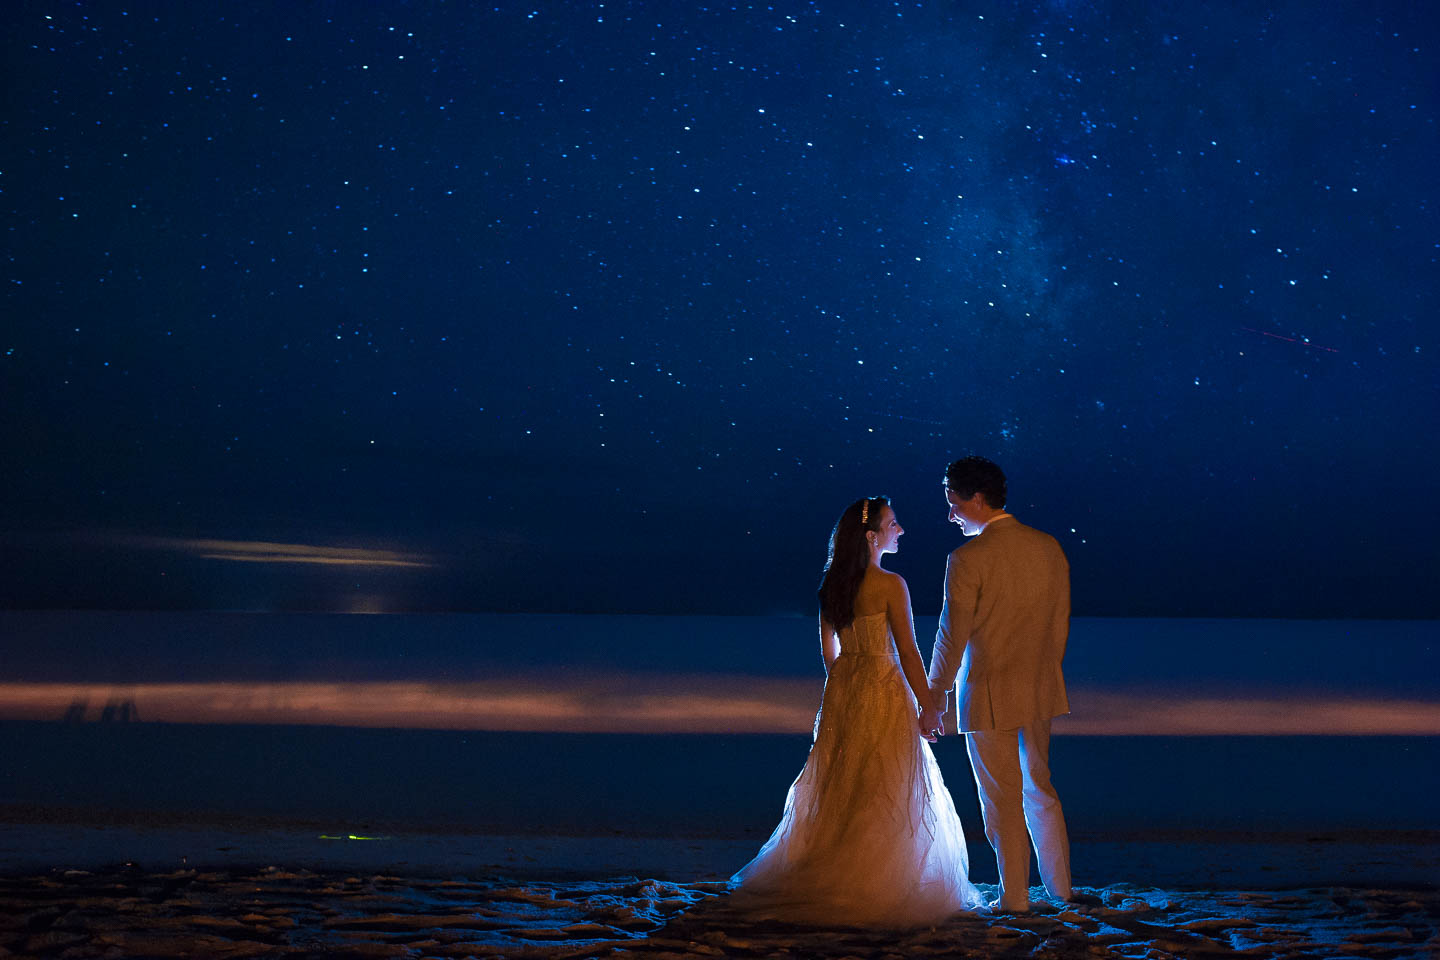 A night image of a couple on the beach after their wedding